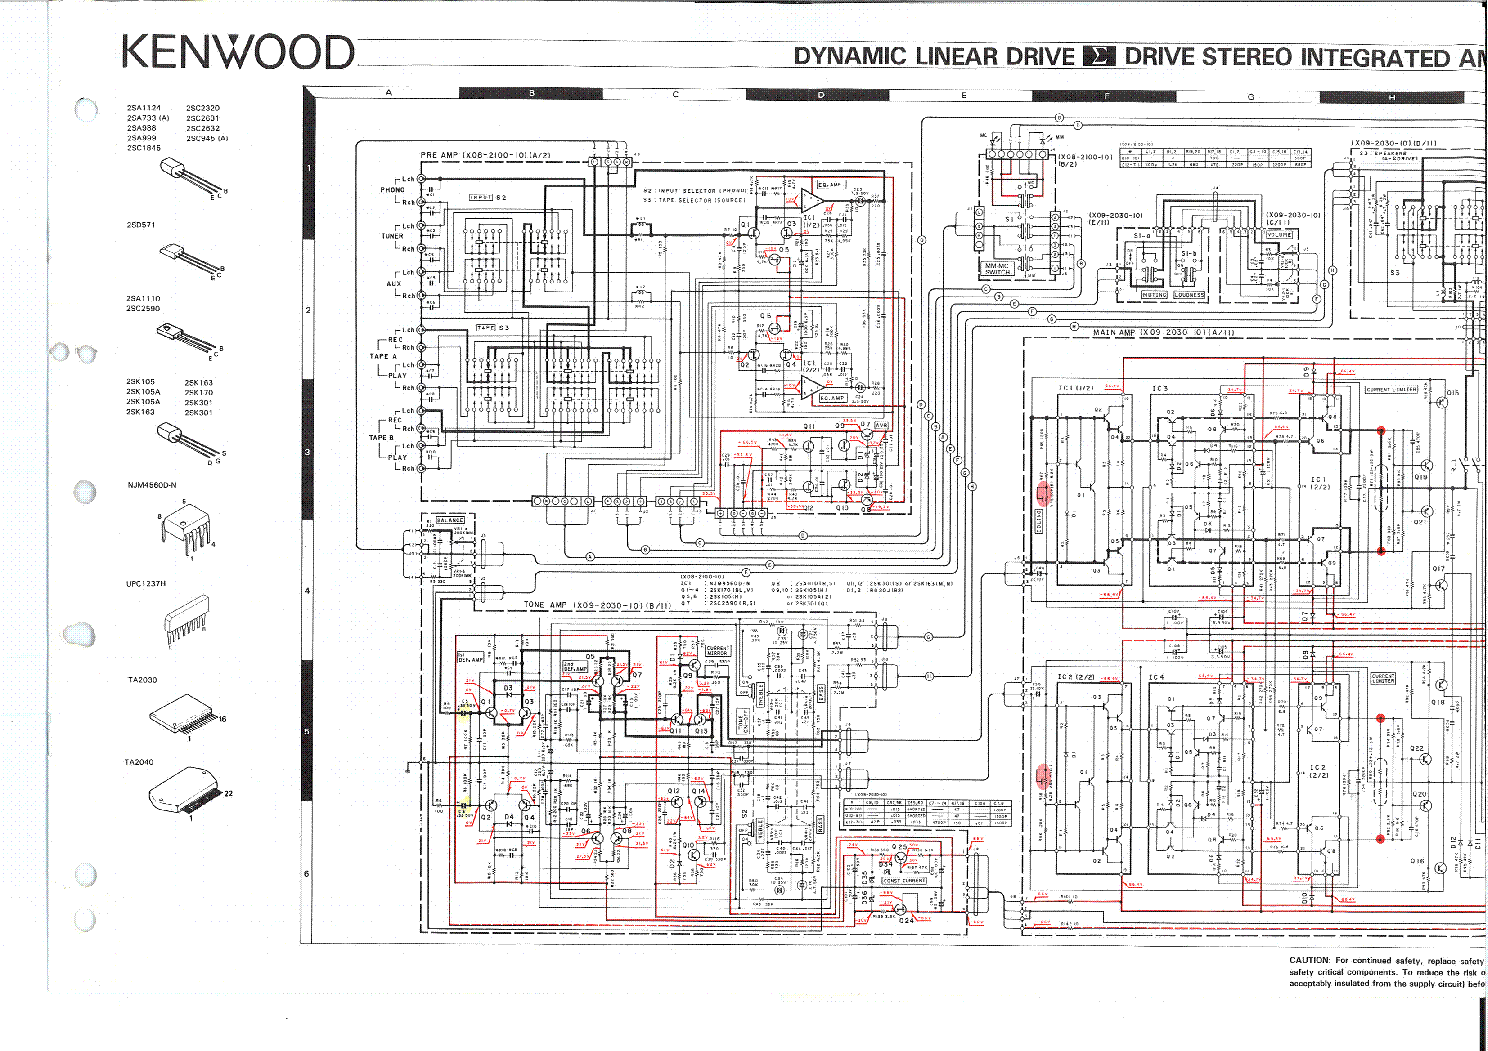 Kenwood Mc 47 Sch Service Manual Free Download Schematics